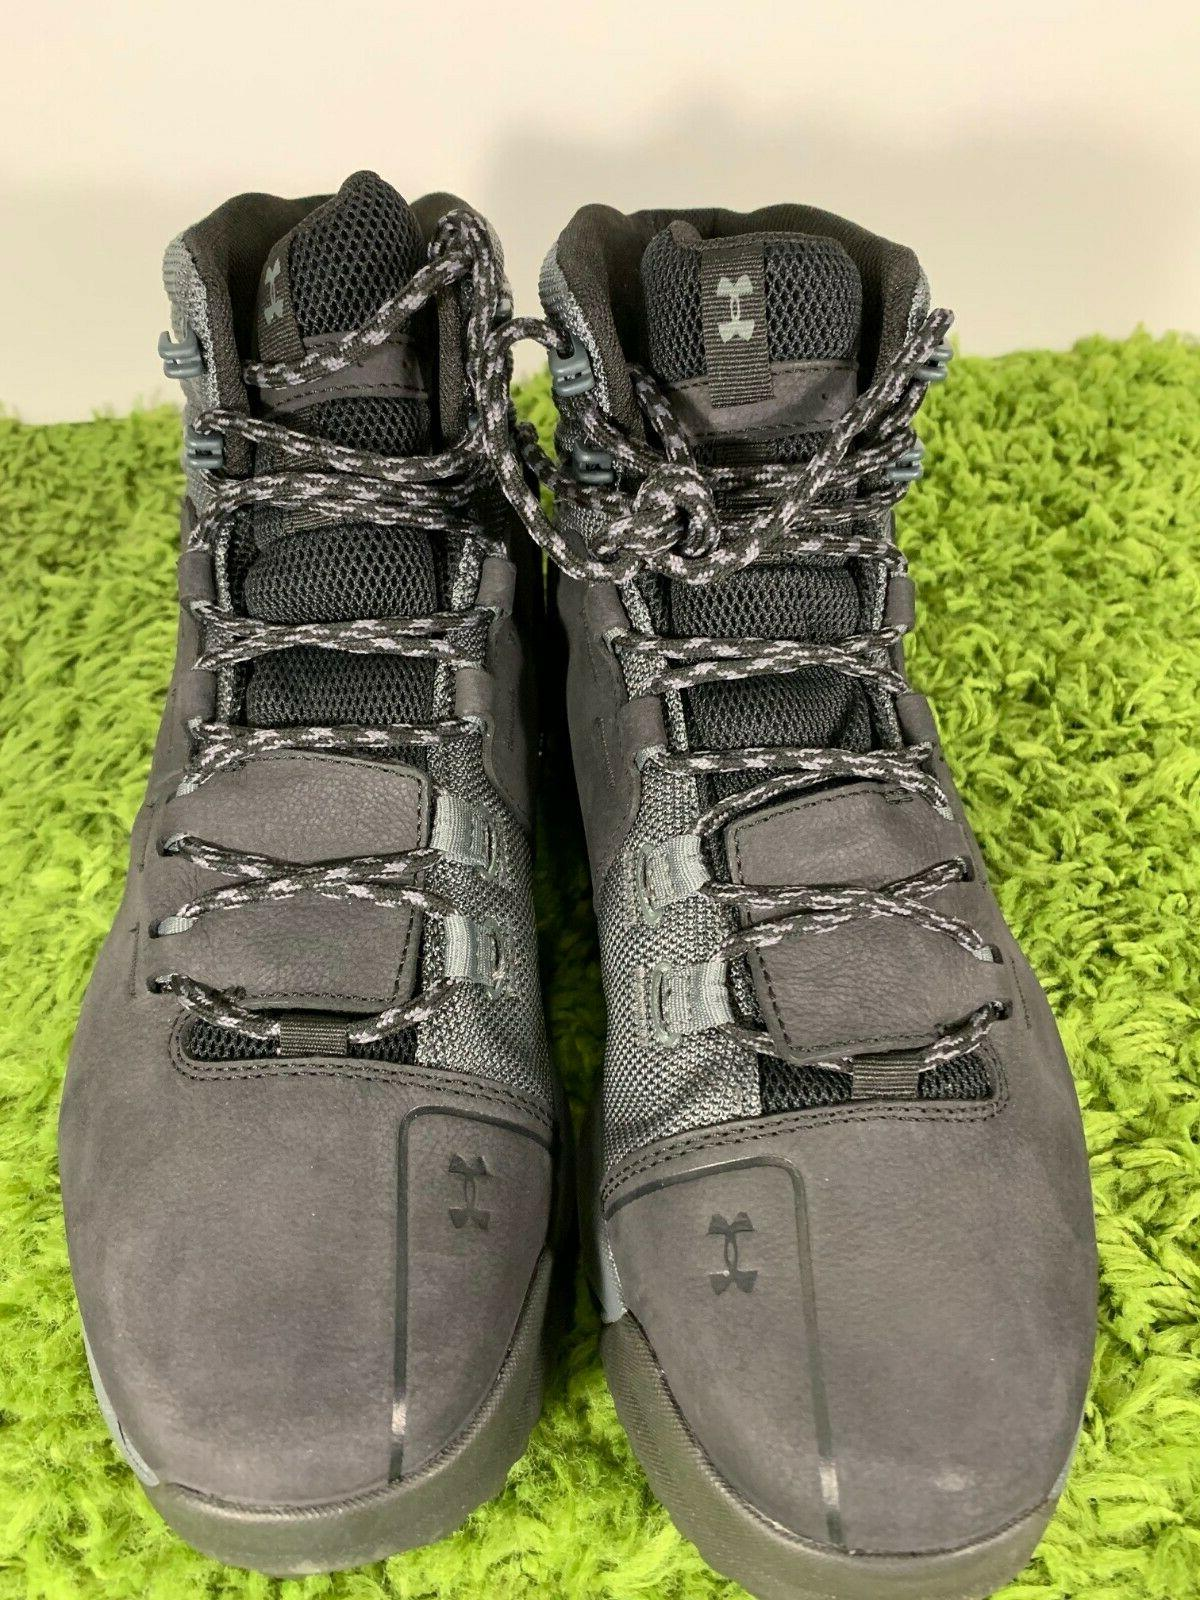 Under Armour Tactical Hiking Hunting Boots 3021367-001 Men's 10